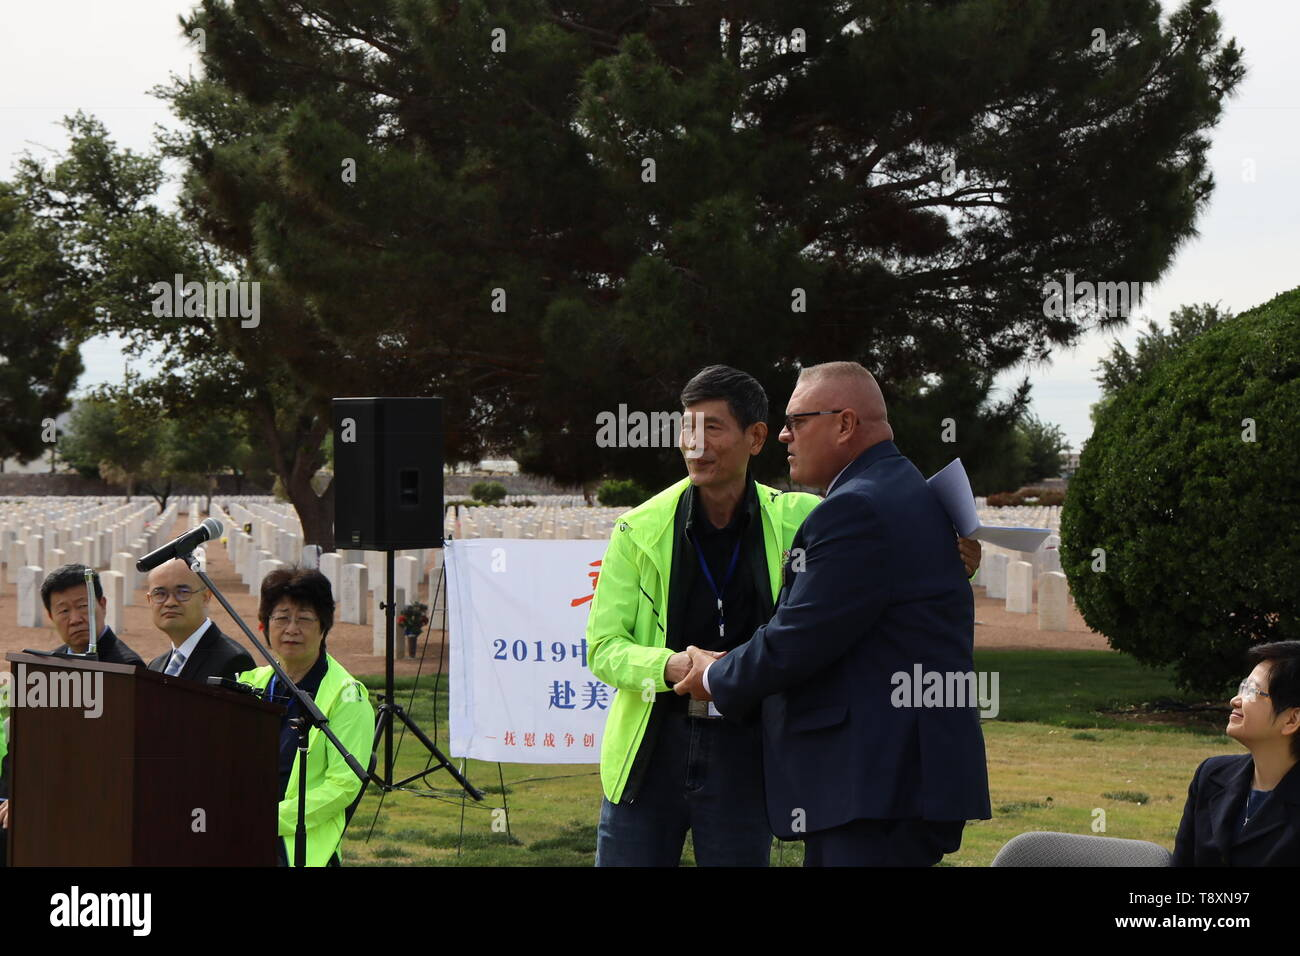 (190515) -- EL PASO (U.S.), May 15, 2019 (Xinhua) -- A formal memorial service is held to commemorate fallen Chinese pilots at the Fort Bliss National Cemetery in El Paso, Texas, the United States, on May 13, 2019. More than seven decades ago, groups of young Chinese came to the United States for military flight trainings against Japanese invasion. Unfortunately, 52 of them were killed during pilot trainings. Now, for the first time in more than half a century, relatives of those killed Chinese cadets made an arduous journey to El Paso, U.S. state of Texas, for belated reunions with their dece - Stock Image